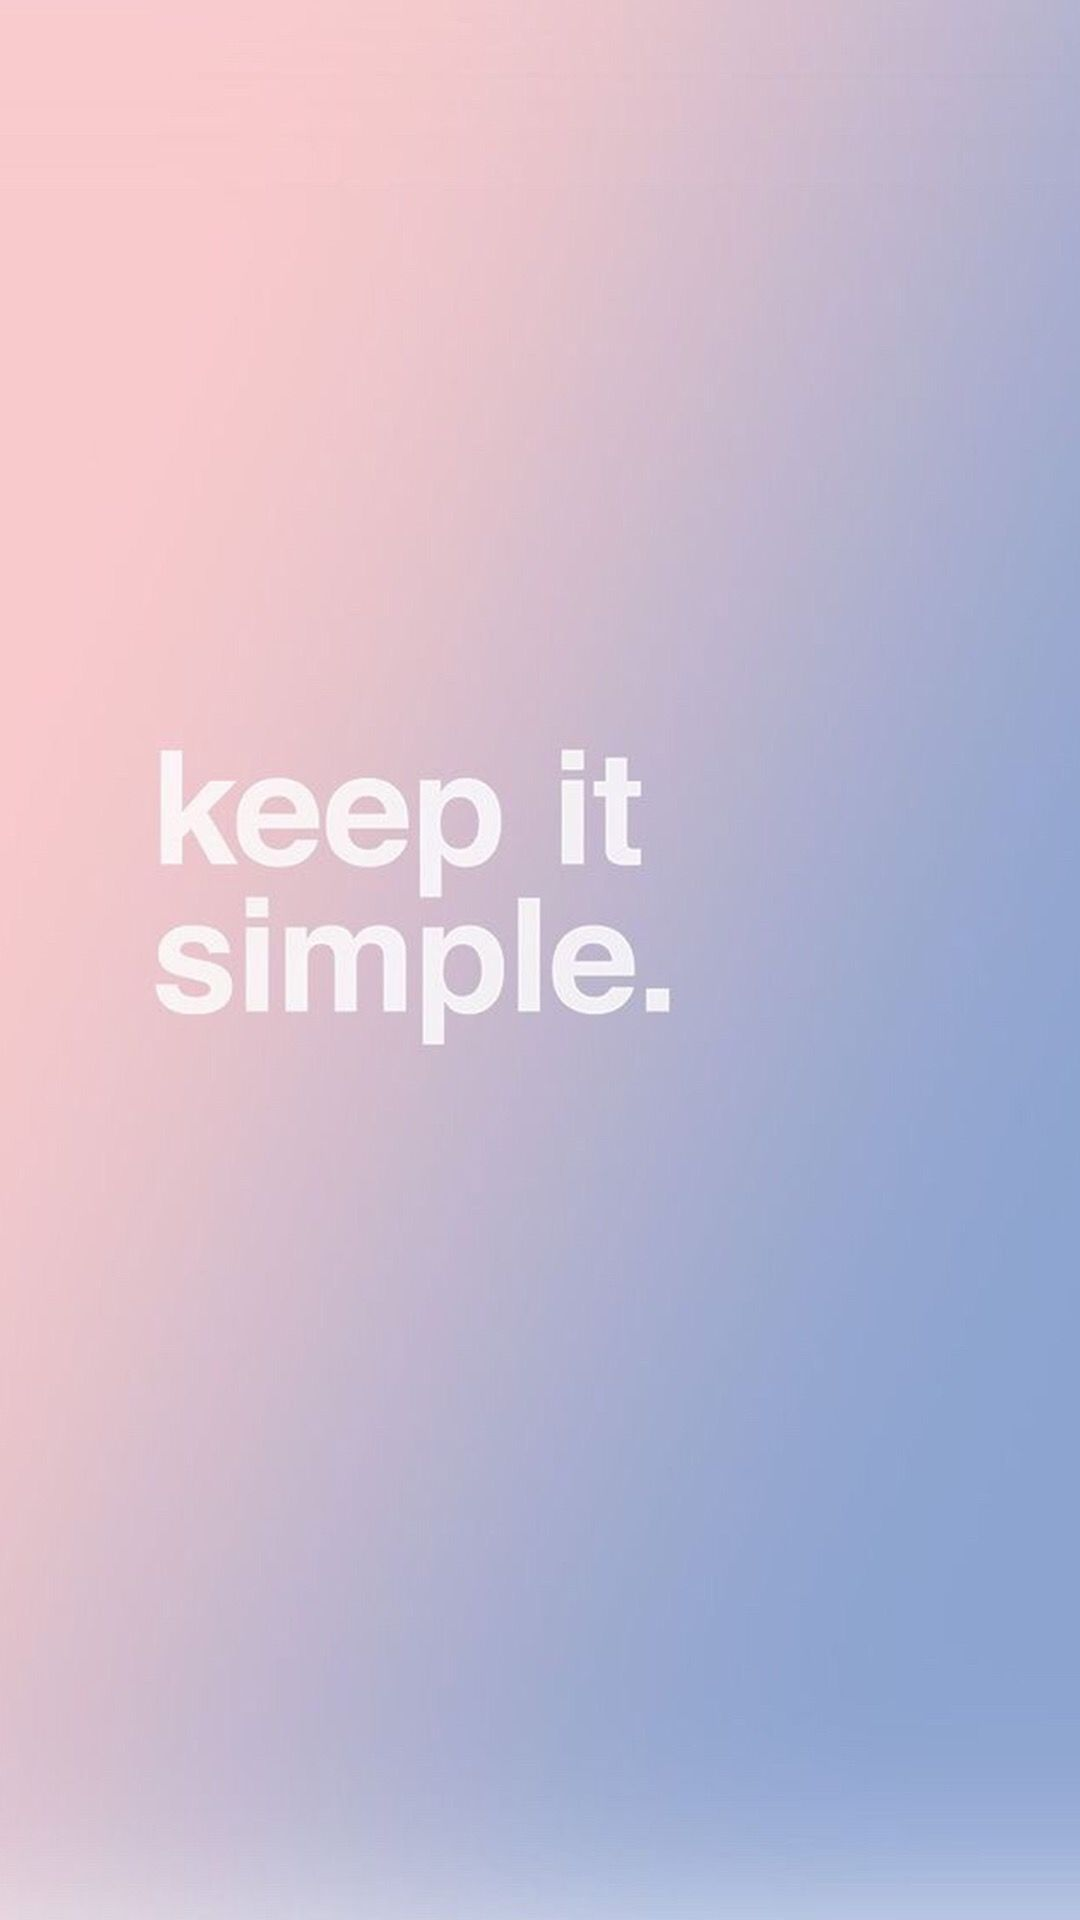 Keep it simple. | Wallpapers | Pinterest | Wallpaper ...